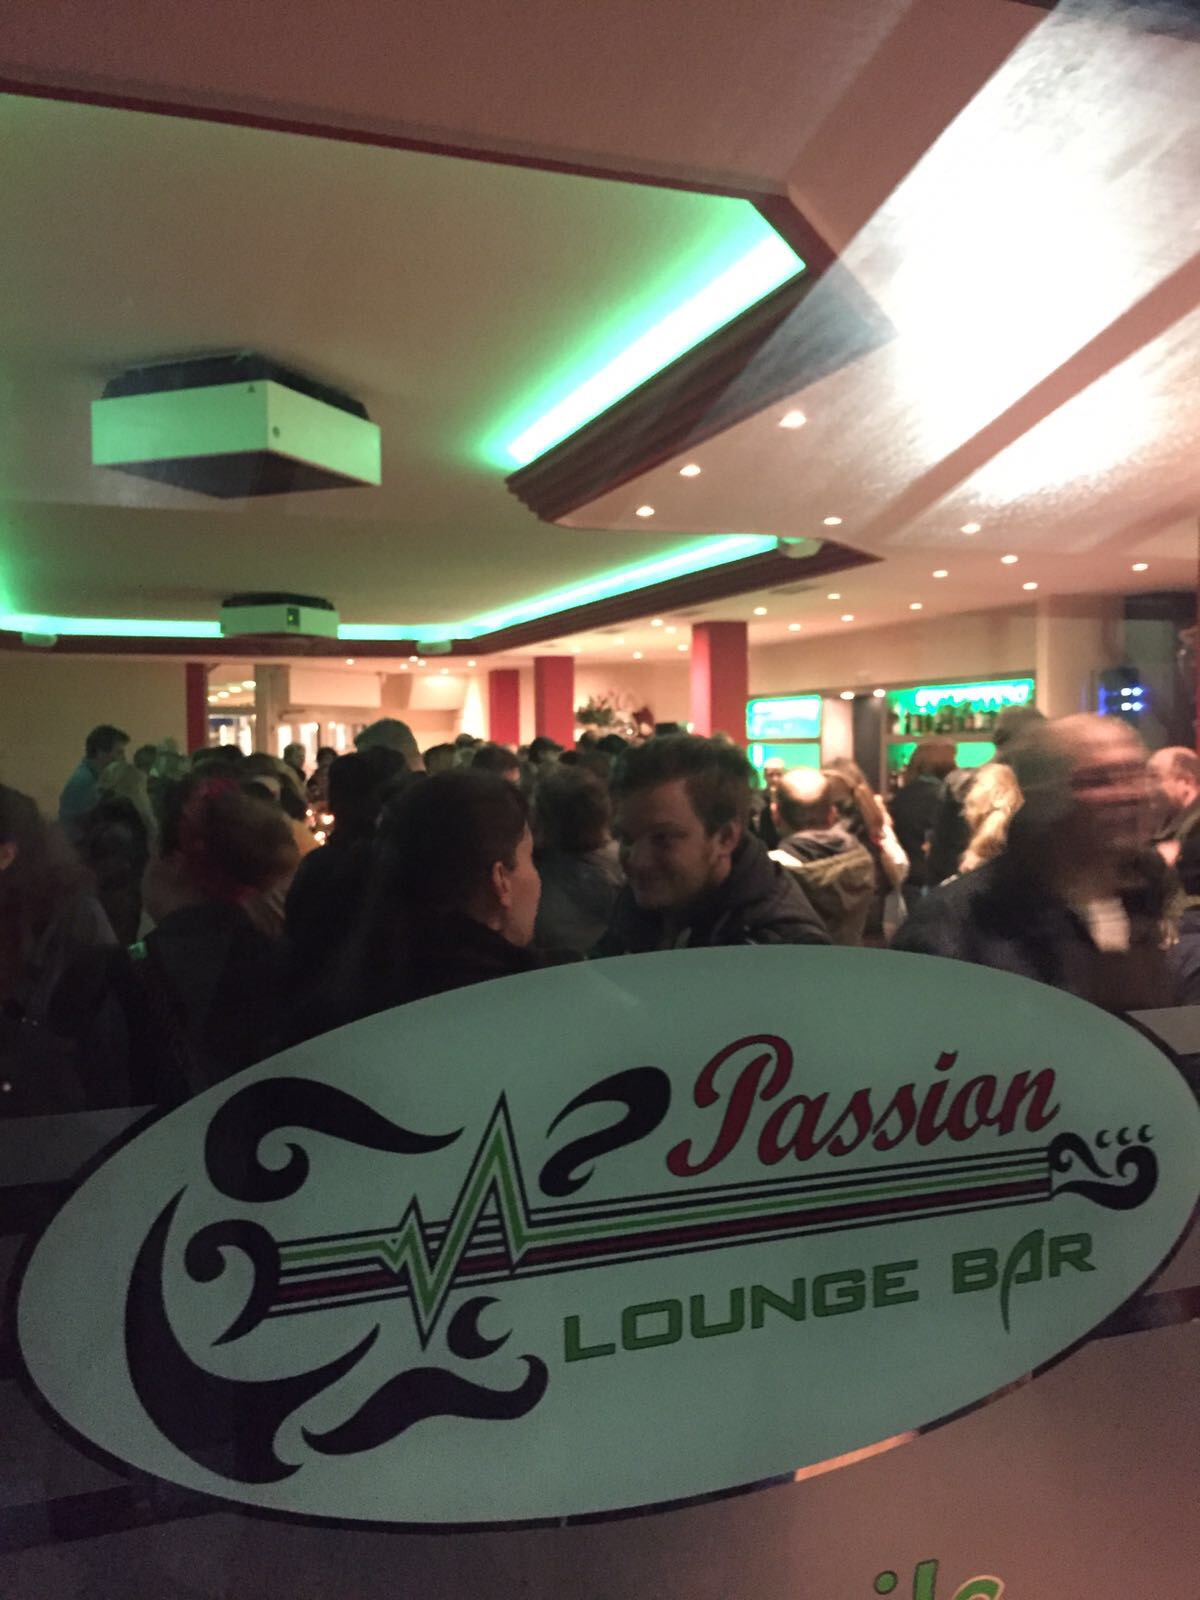 laden/preetz/passion-lounge-bar/2017-03-12-13.24.26.jpg